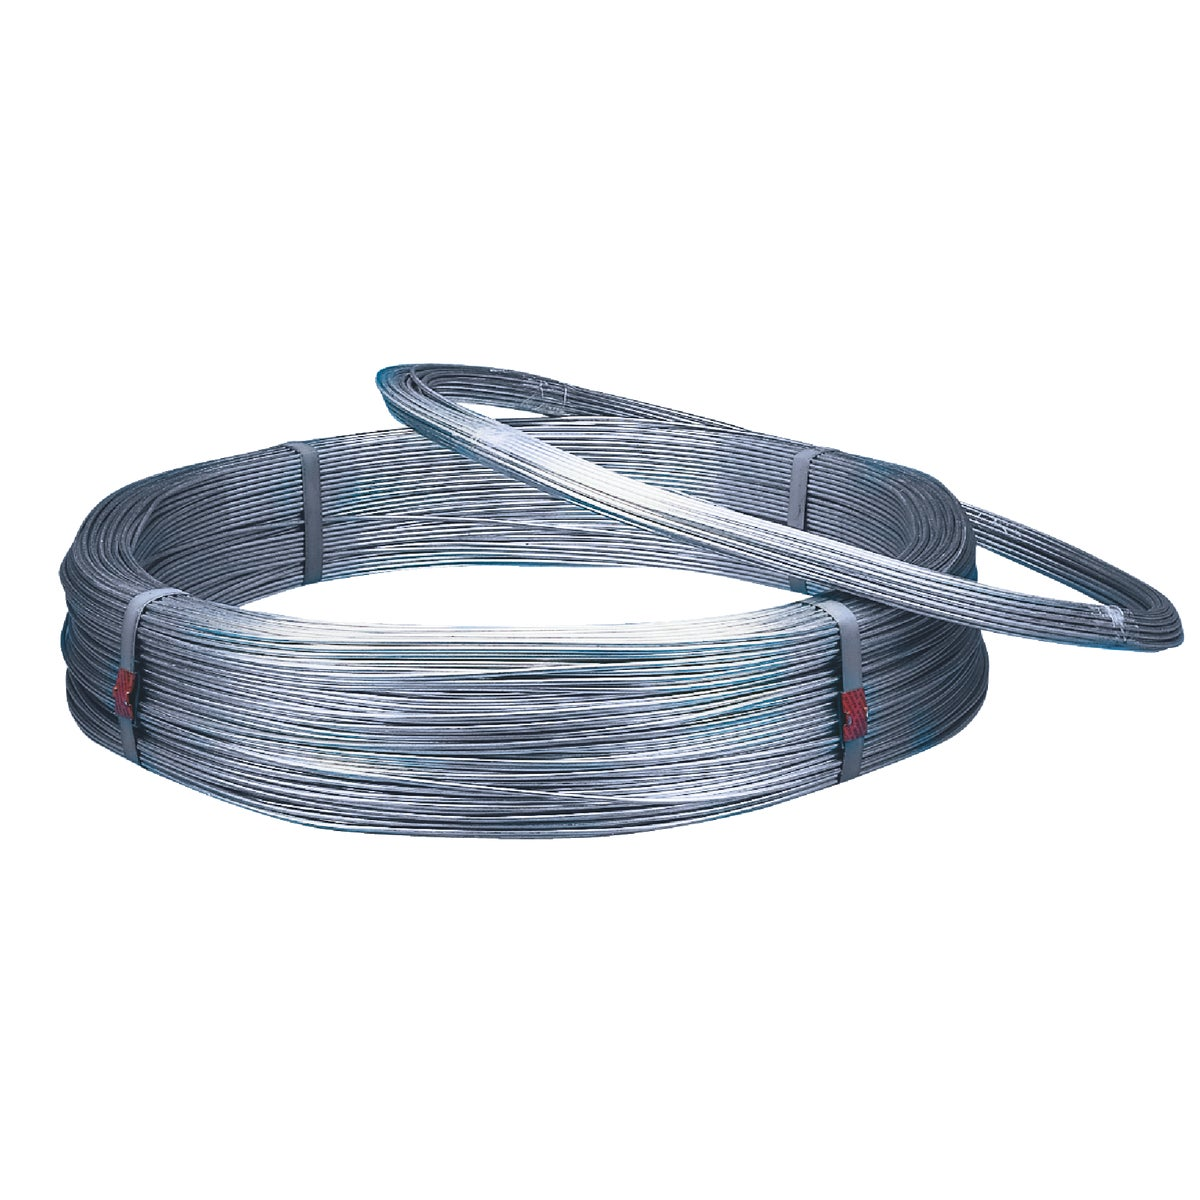 4000' SMOOTH COIL WIRE